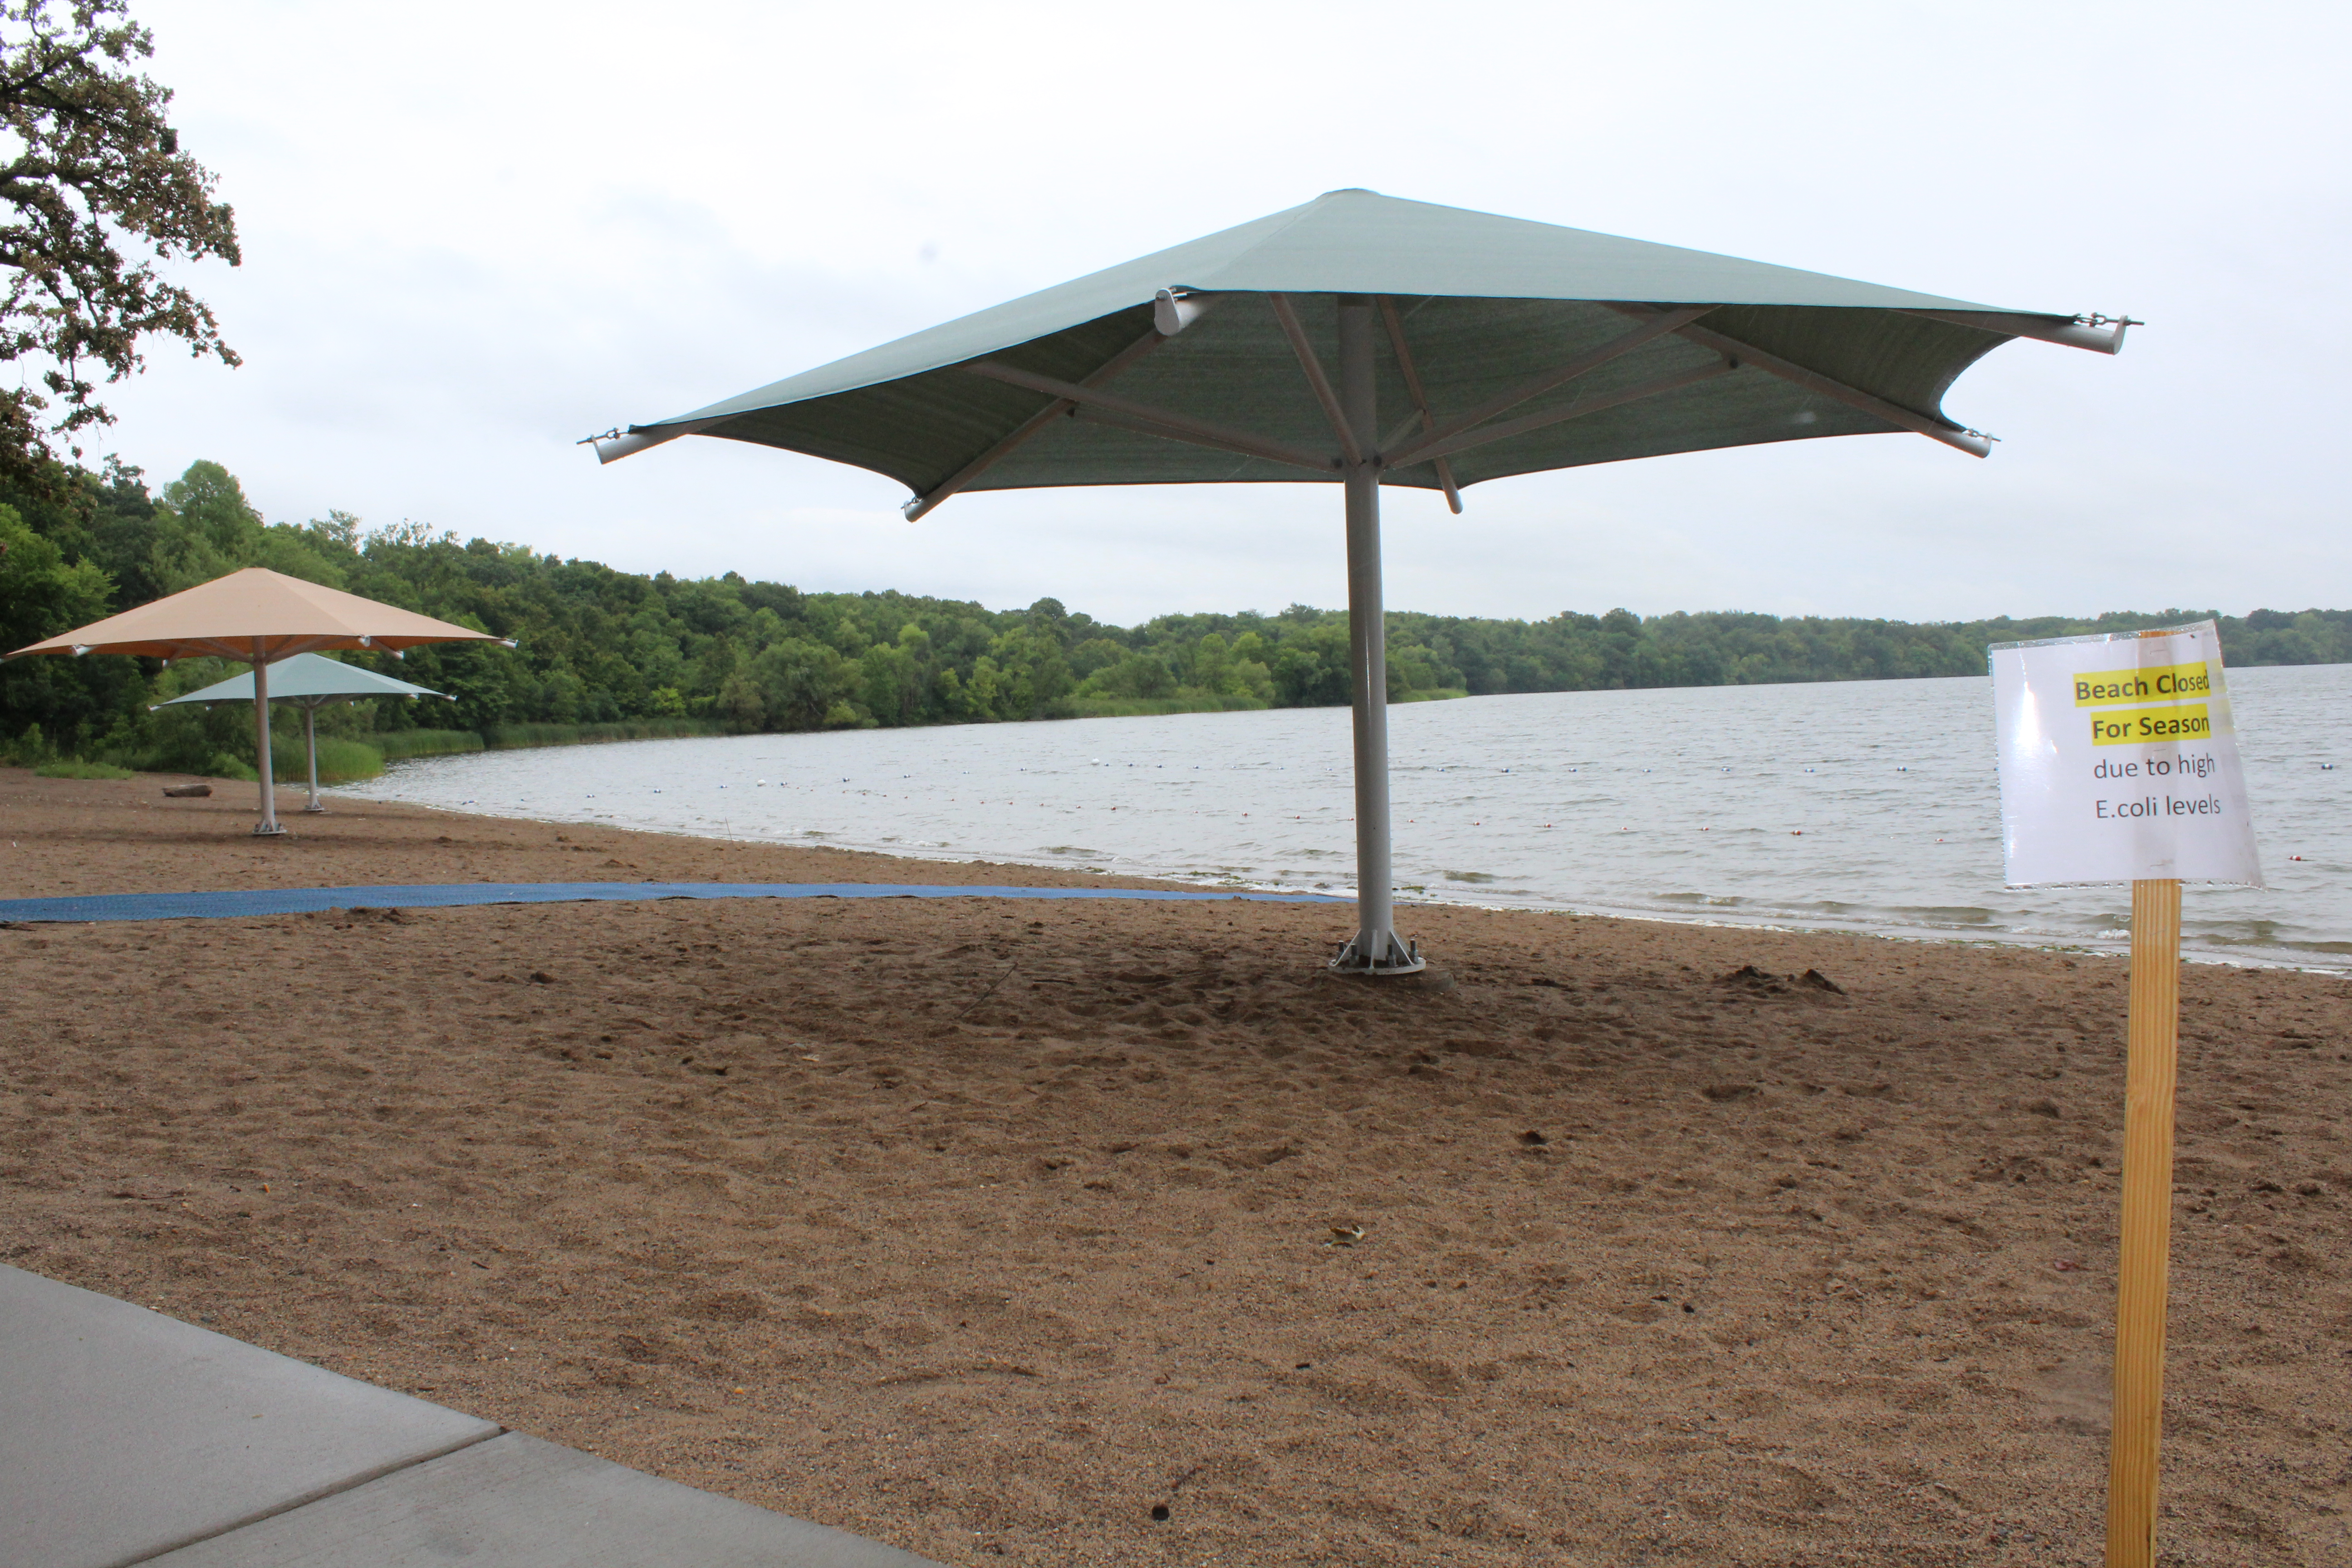 The Lake Rebecca beach has been closed due to high E. coli levels.